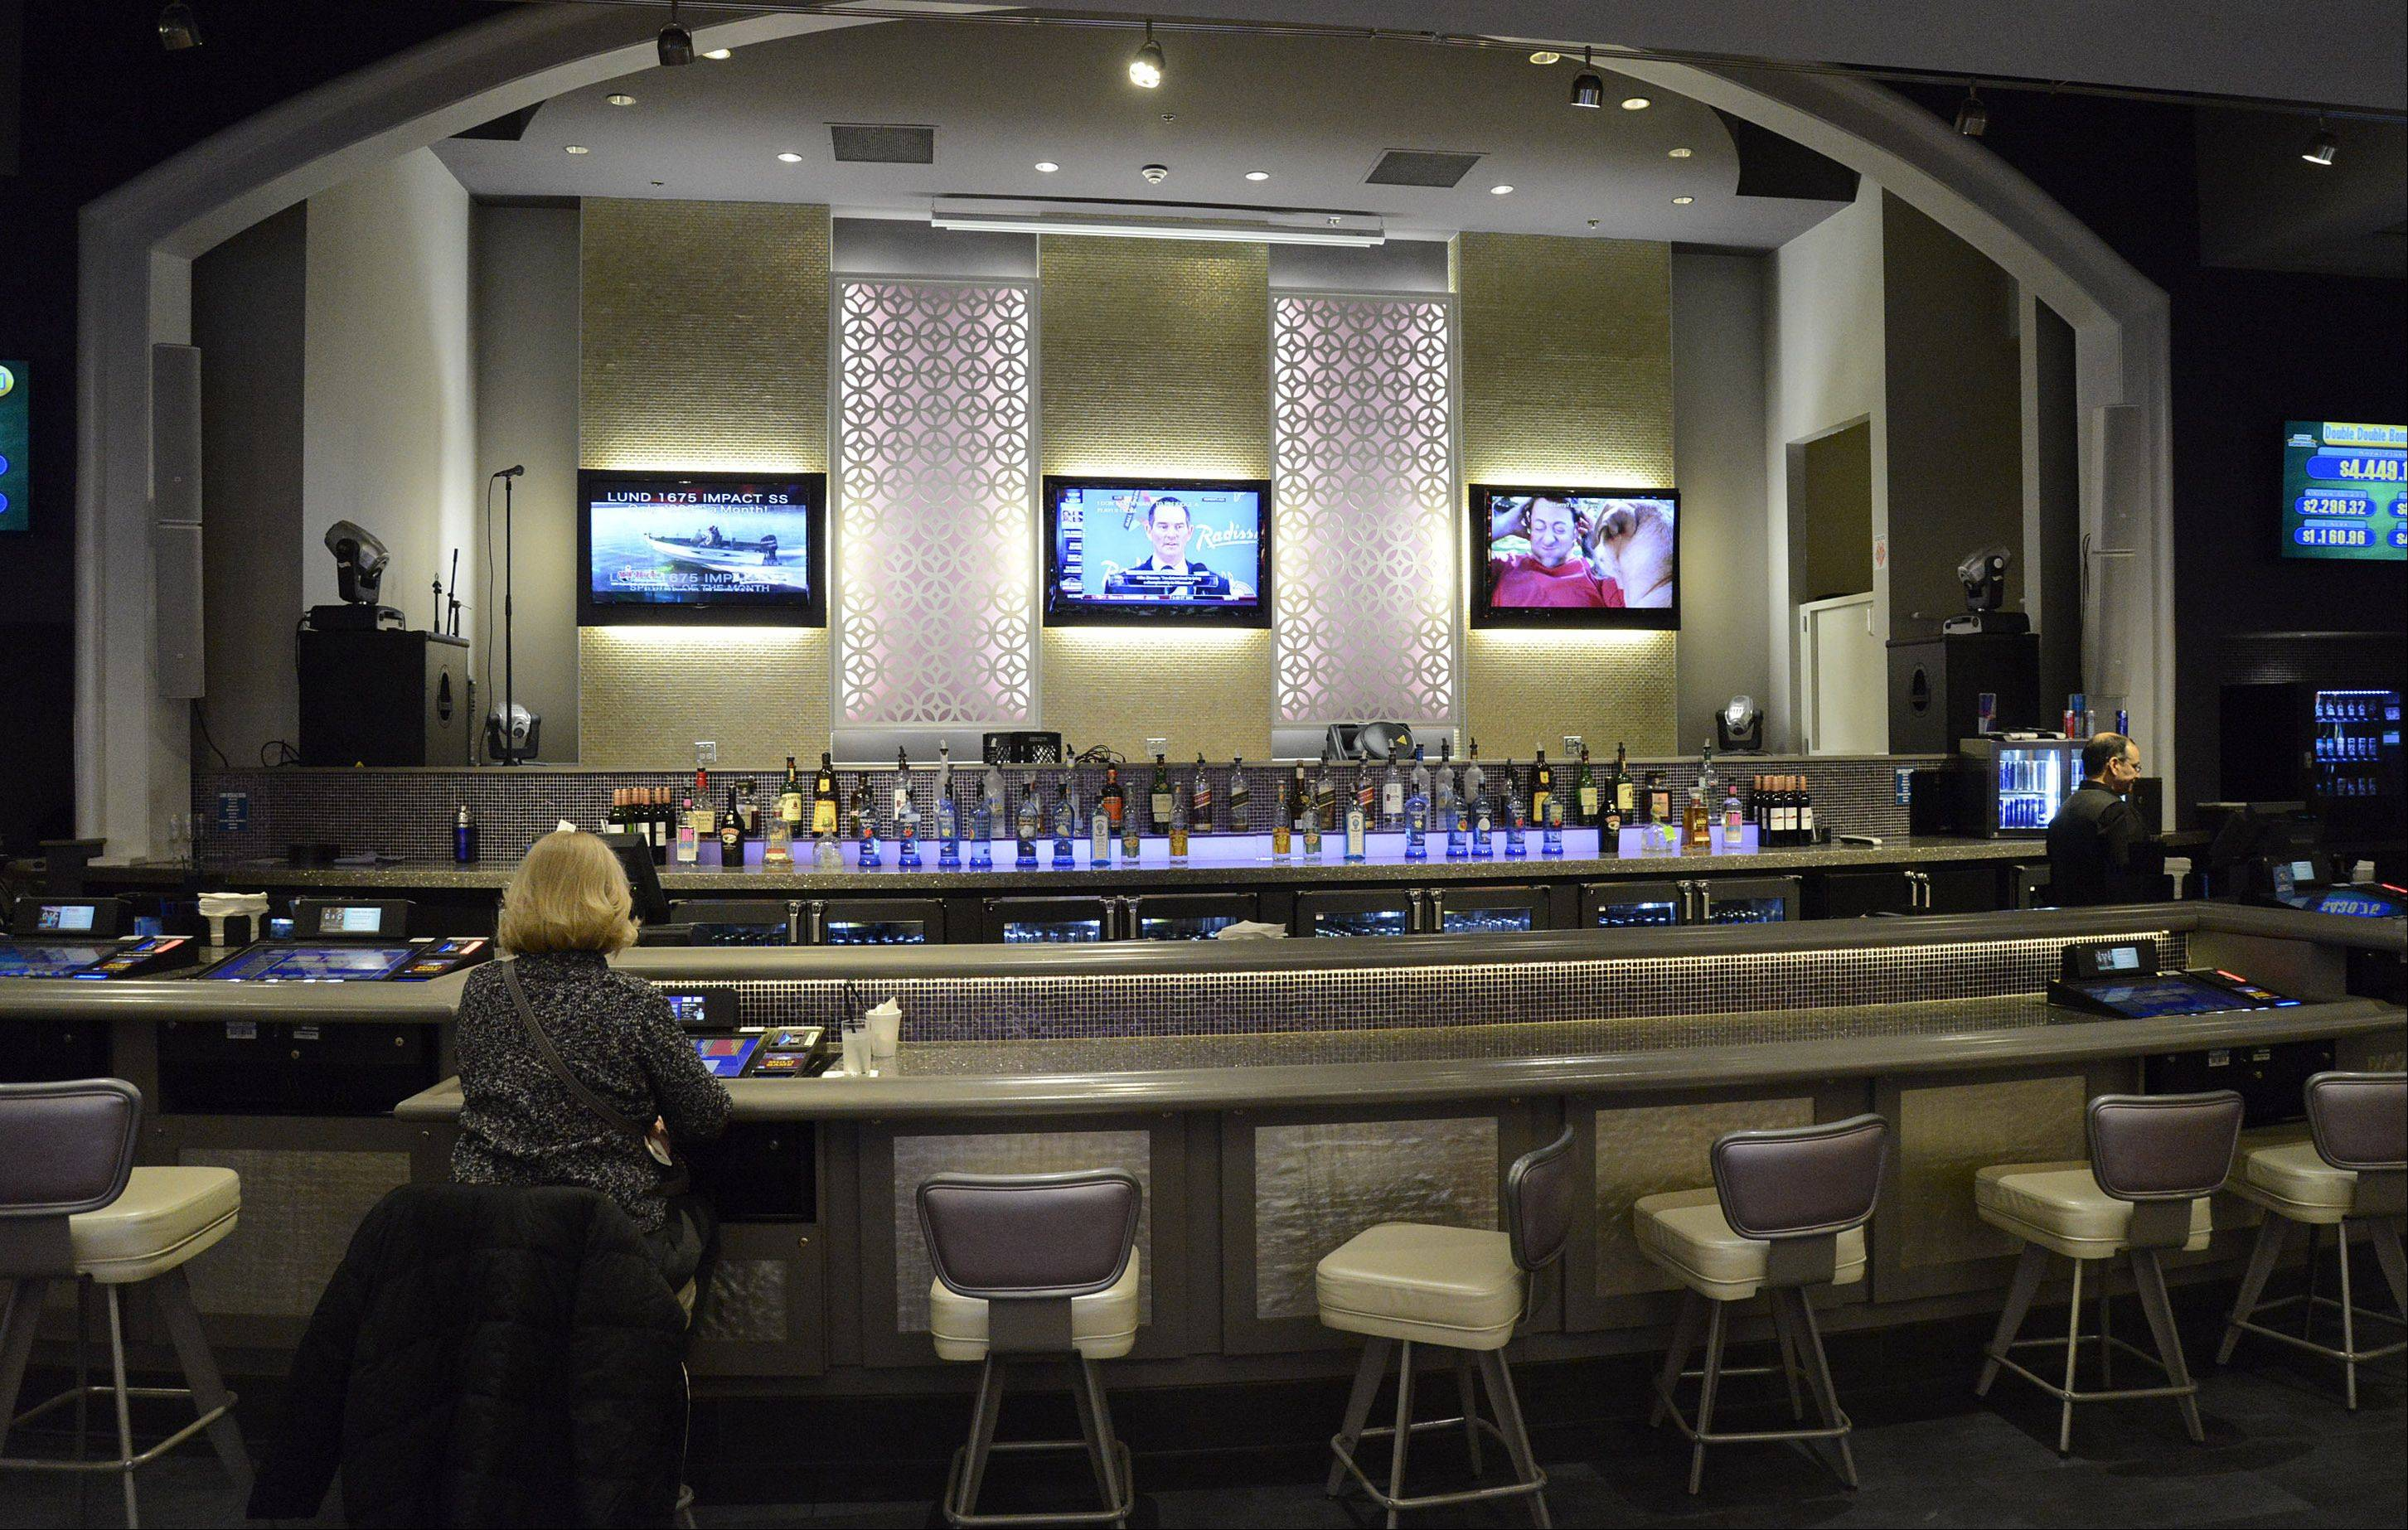 Grand Victoria Casino in Elgin has finished renovations, including to this area, at the rear of the main casino floor, which features a stage for live entertainment as well as a bar.